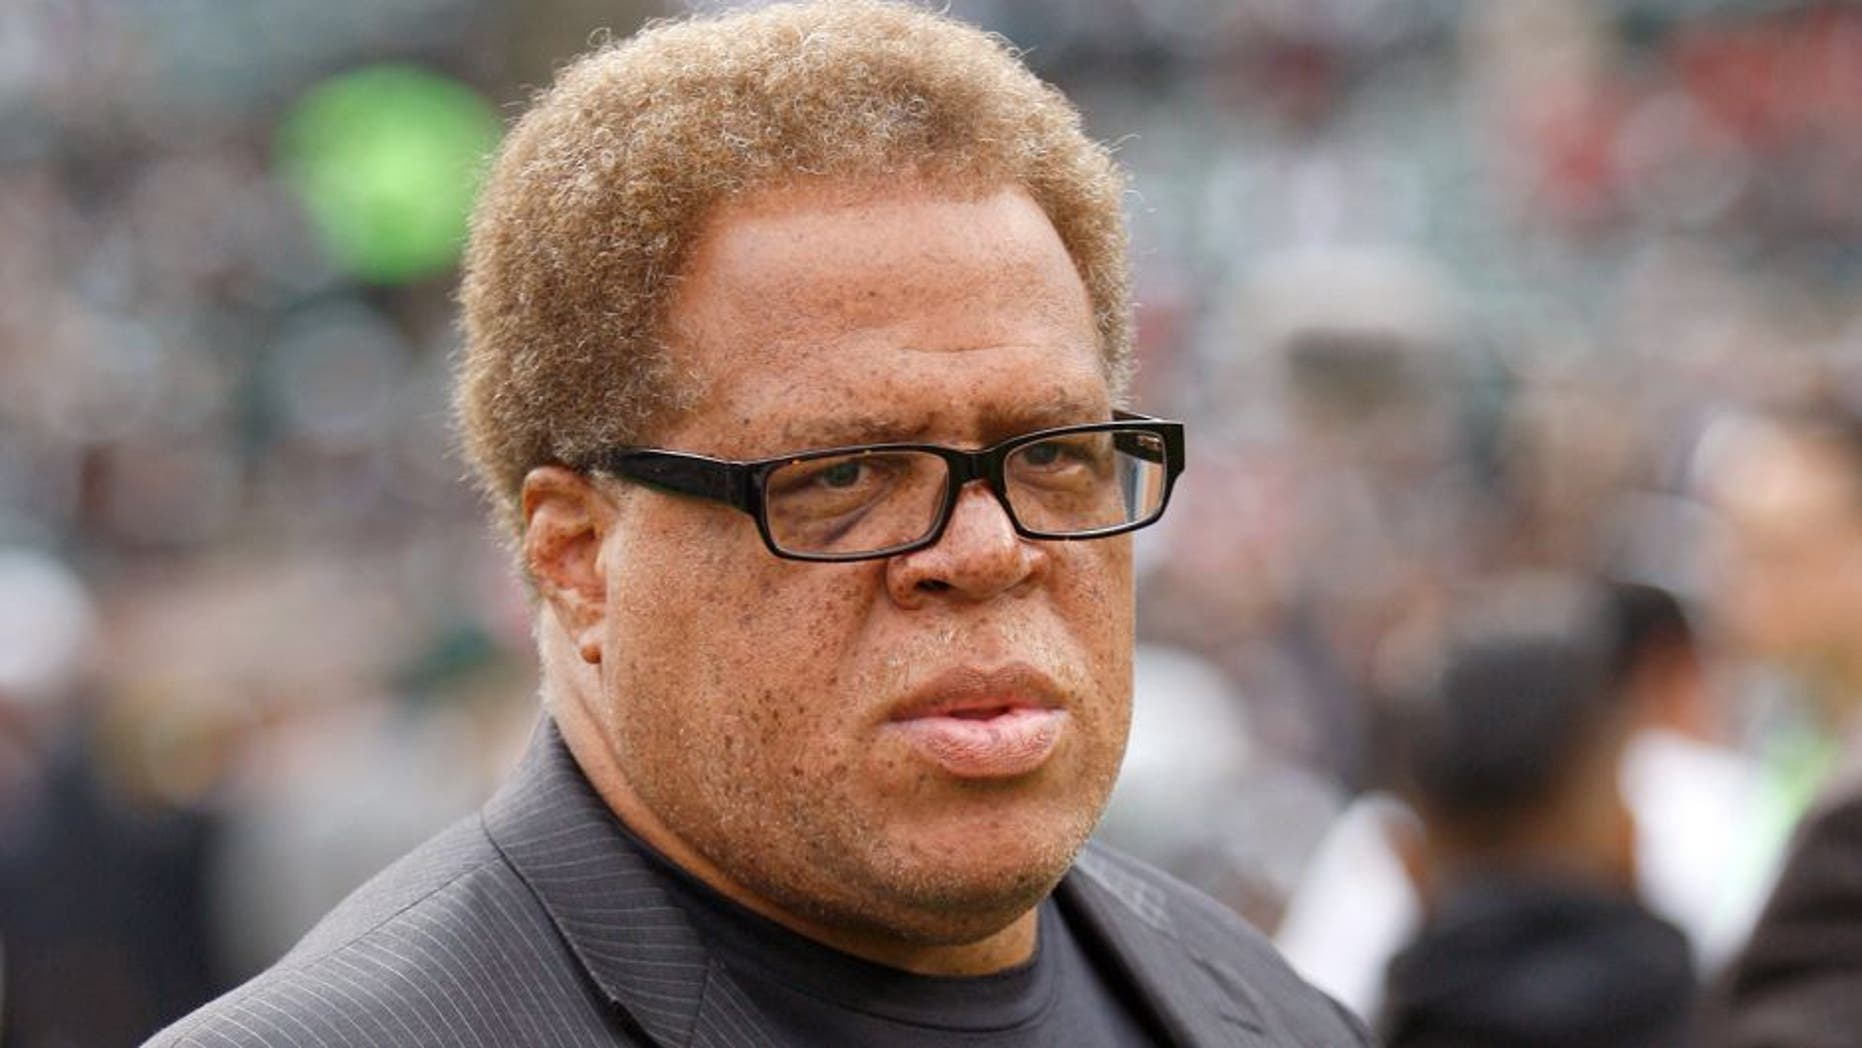 OAKLAND, CA - DECEMBER 7: General Manager Reggie McKenzie of the Oakland Raiders stands of the field prior to the game against the San Francisco 49ers at O.co Coliseum on December 7, 2014 in Oakland, California. The Raiders defeated the 49ers 24-13. (Photo by Michael Zagaris/San Francisco 49ers/Getty Images)